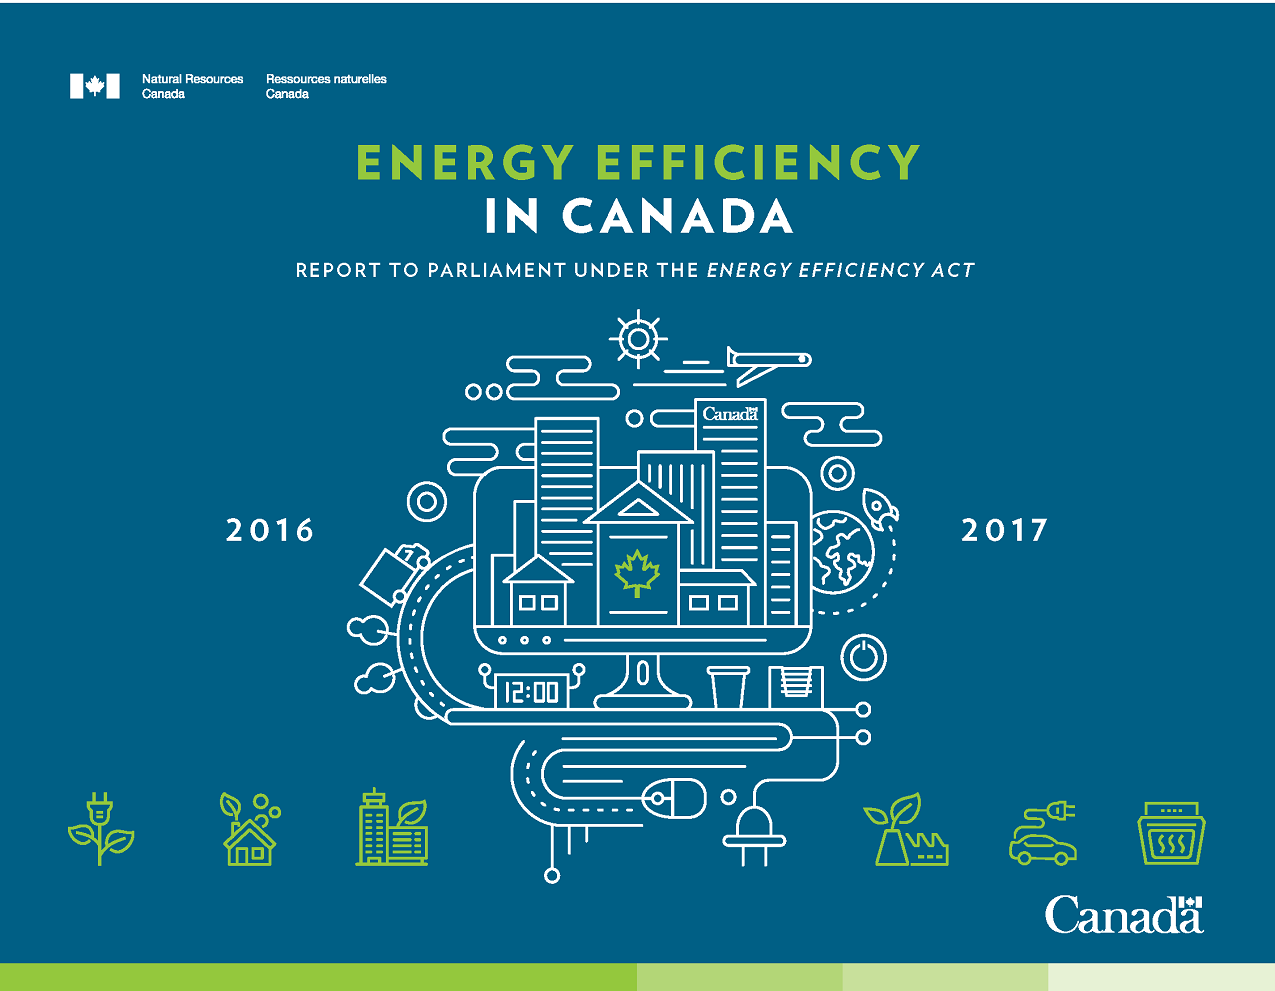 IMPROVING ENERGY PERFORMANCE IN CANADA: REPORT TO PARLIAMENT UNDER THE ENERGY EFFICIENCY ACT, 2016-2017